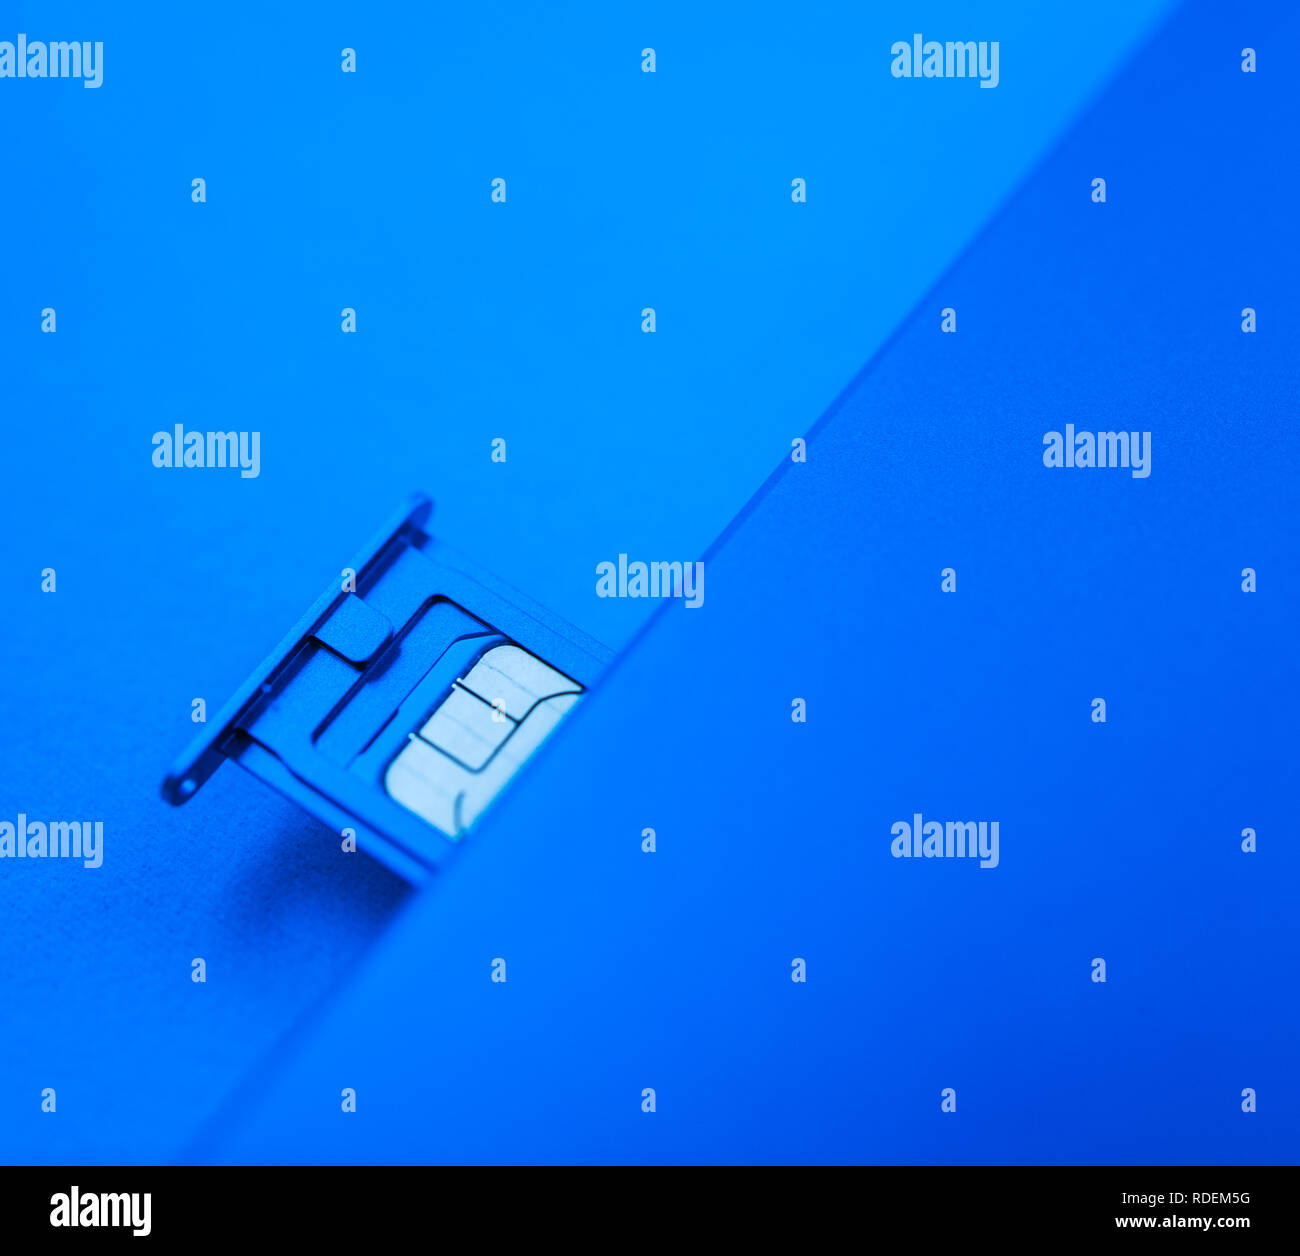 Micro SIM card subscriber identity module inside new smartphone telephone mobile device against blue background - Stock Image